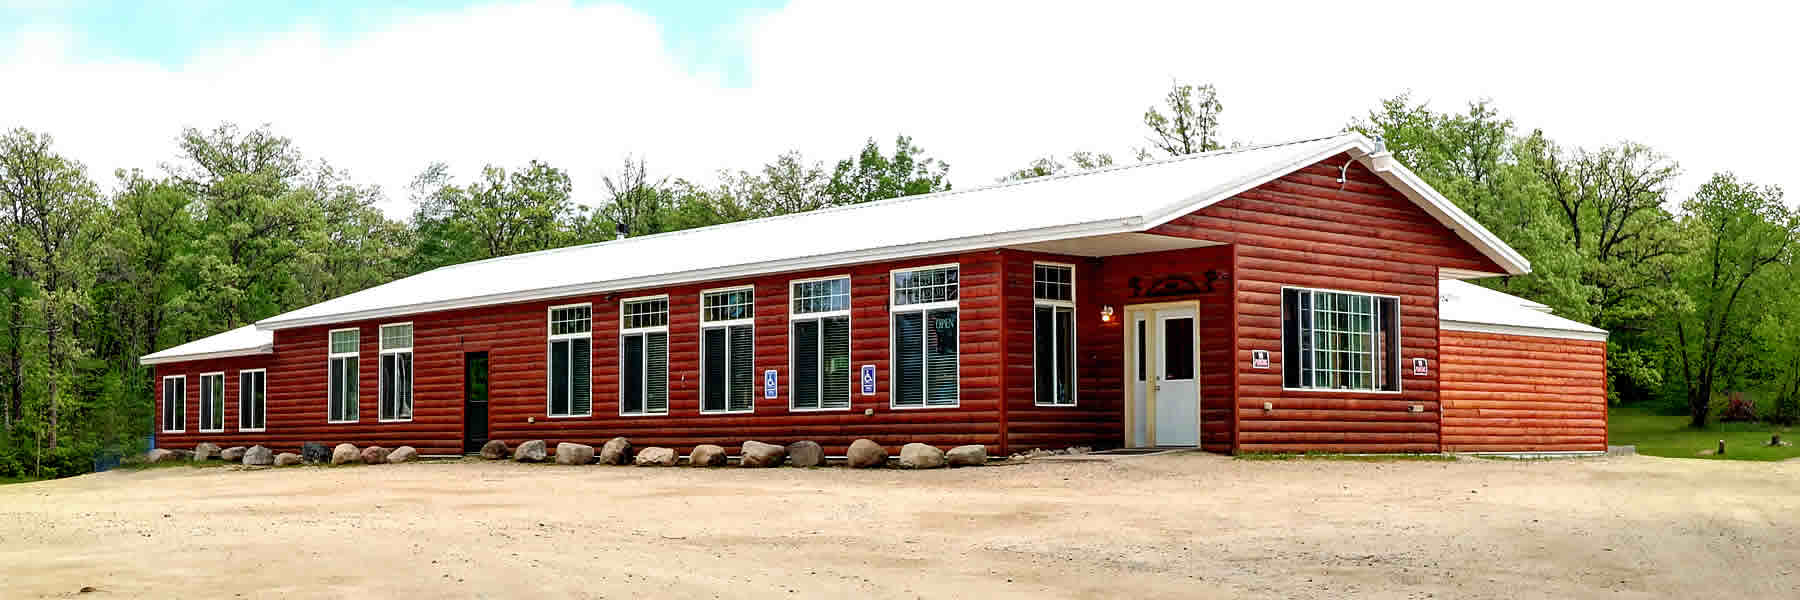 The Ice Cracking Lodge is located close to Ponsford, Minnesota.